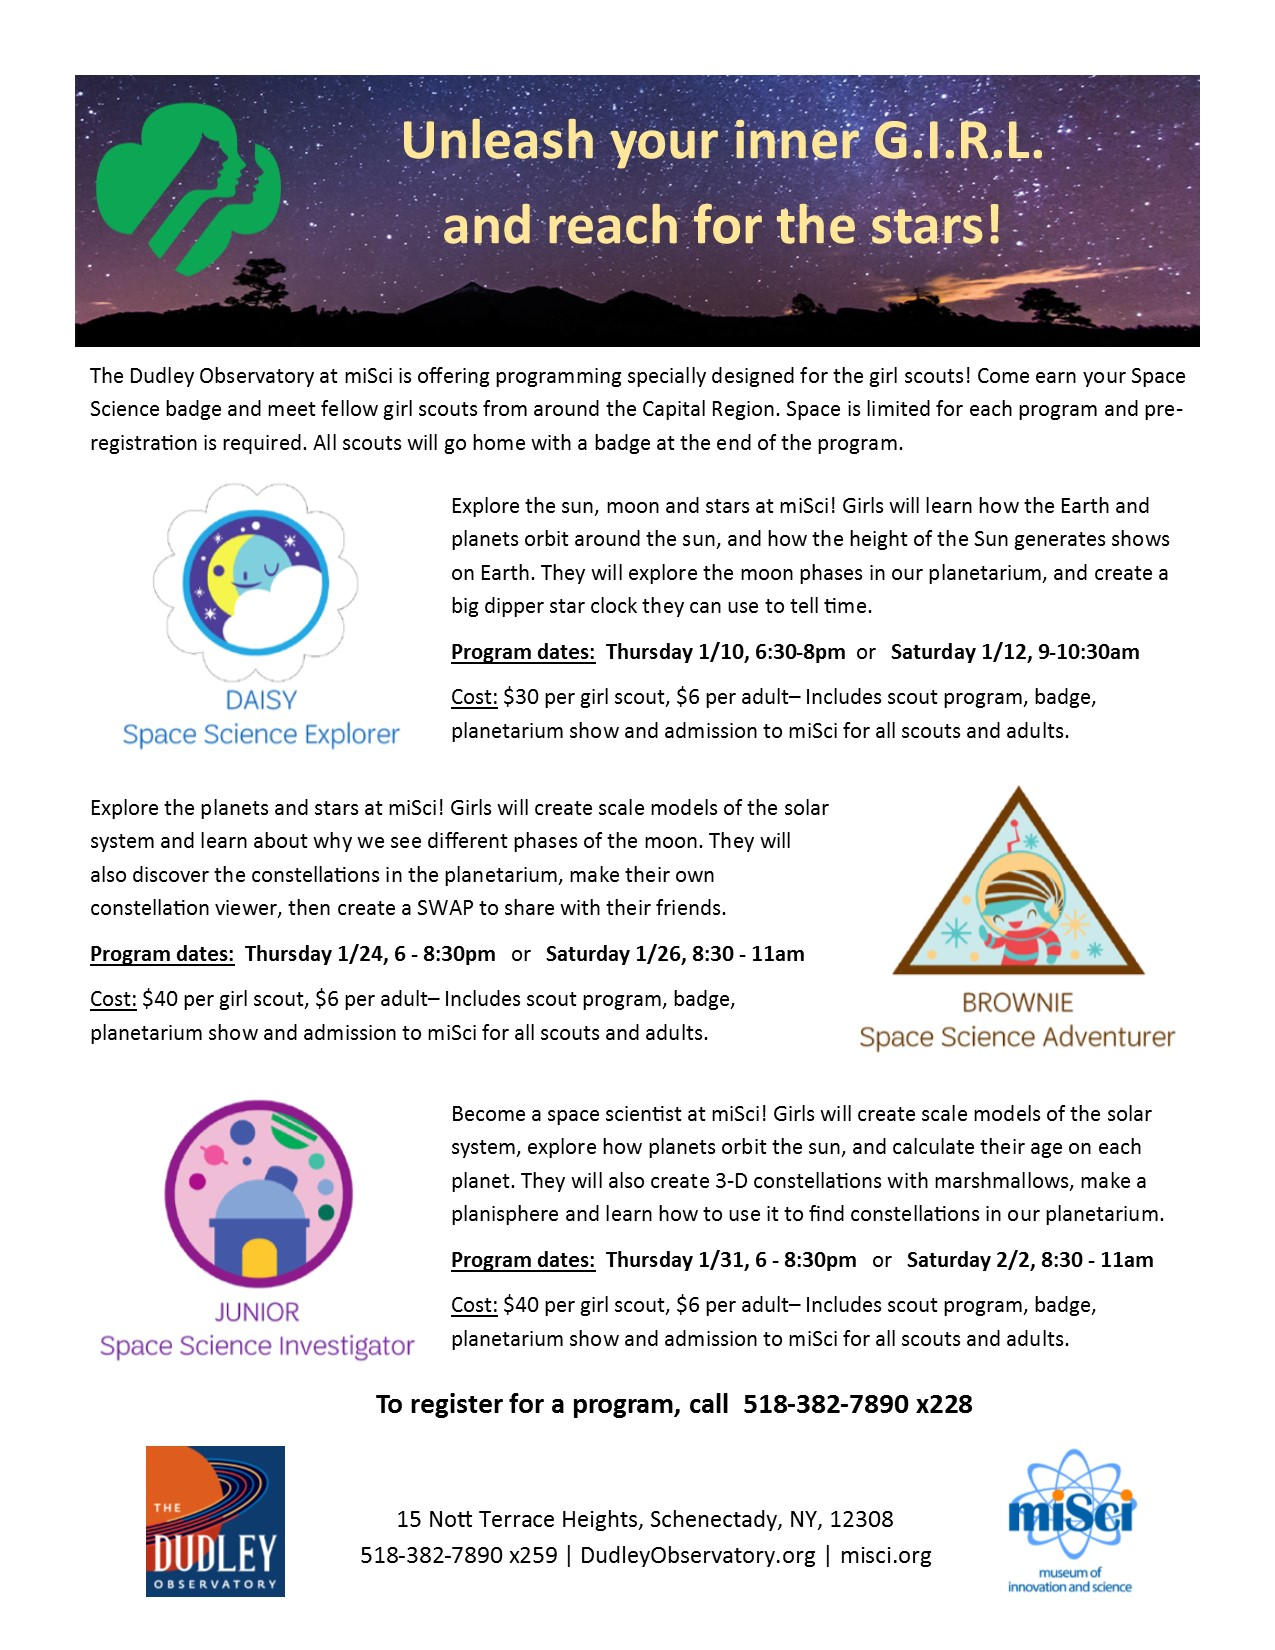 Girl Scouts - Dudley Observatory